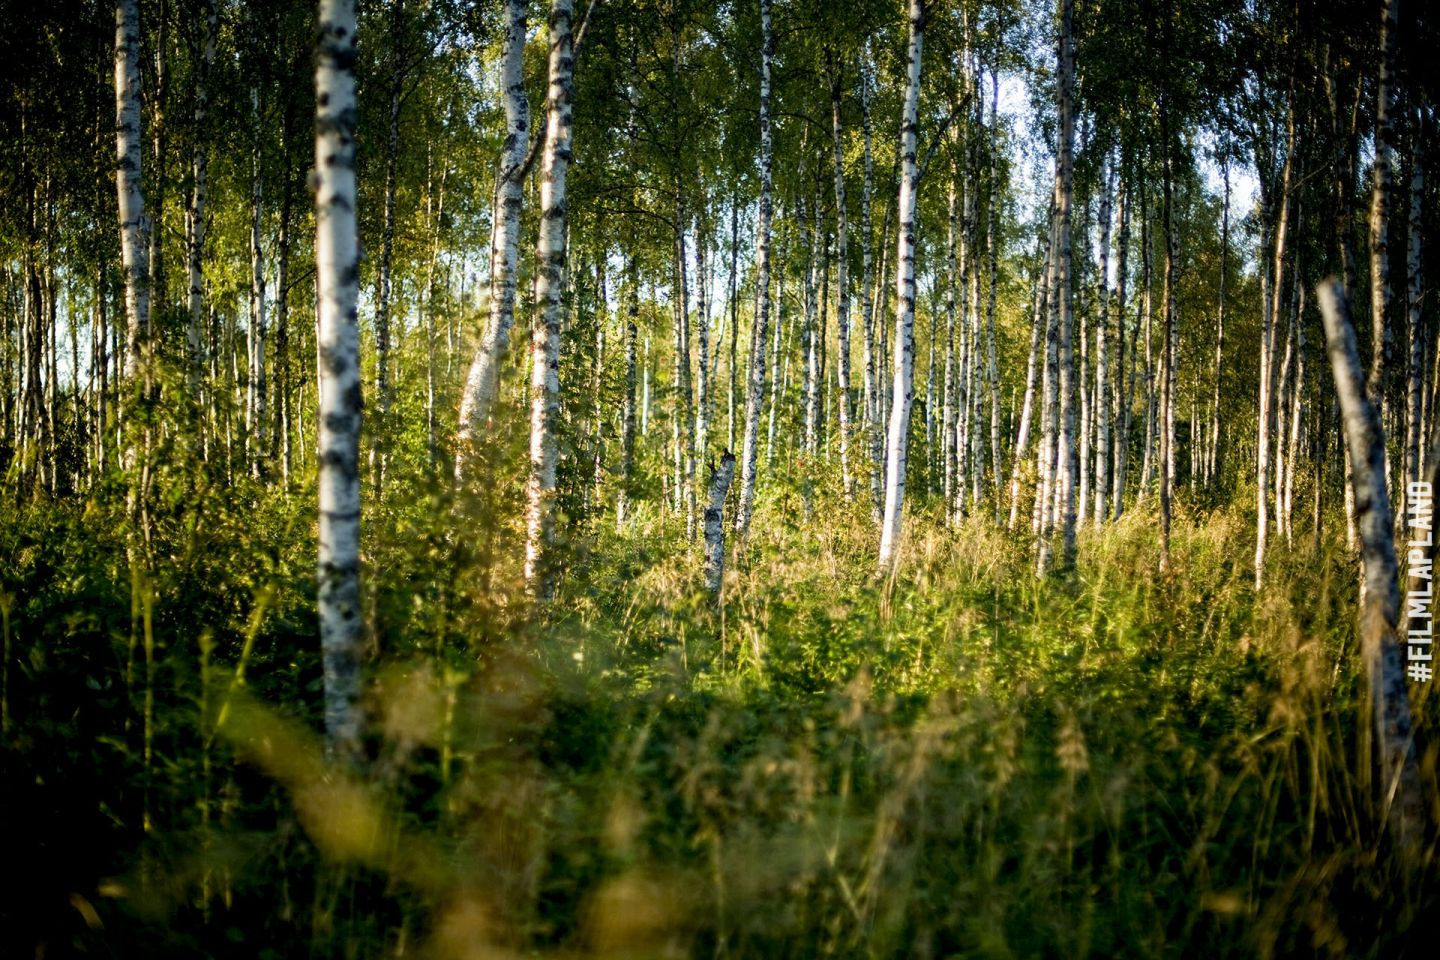 Sunlight filtering through birch trees in Sodankylä, Finland